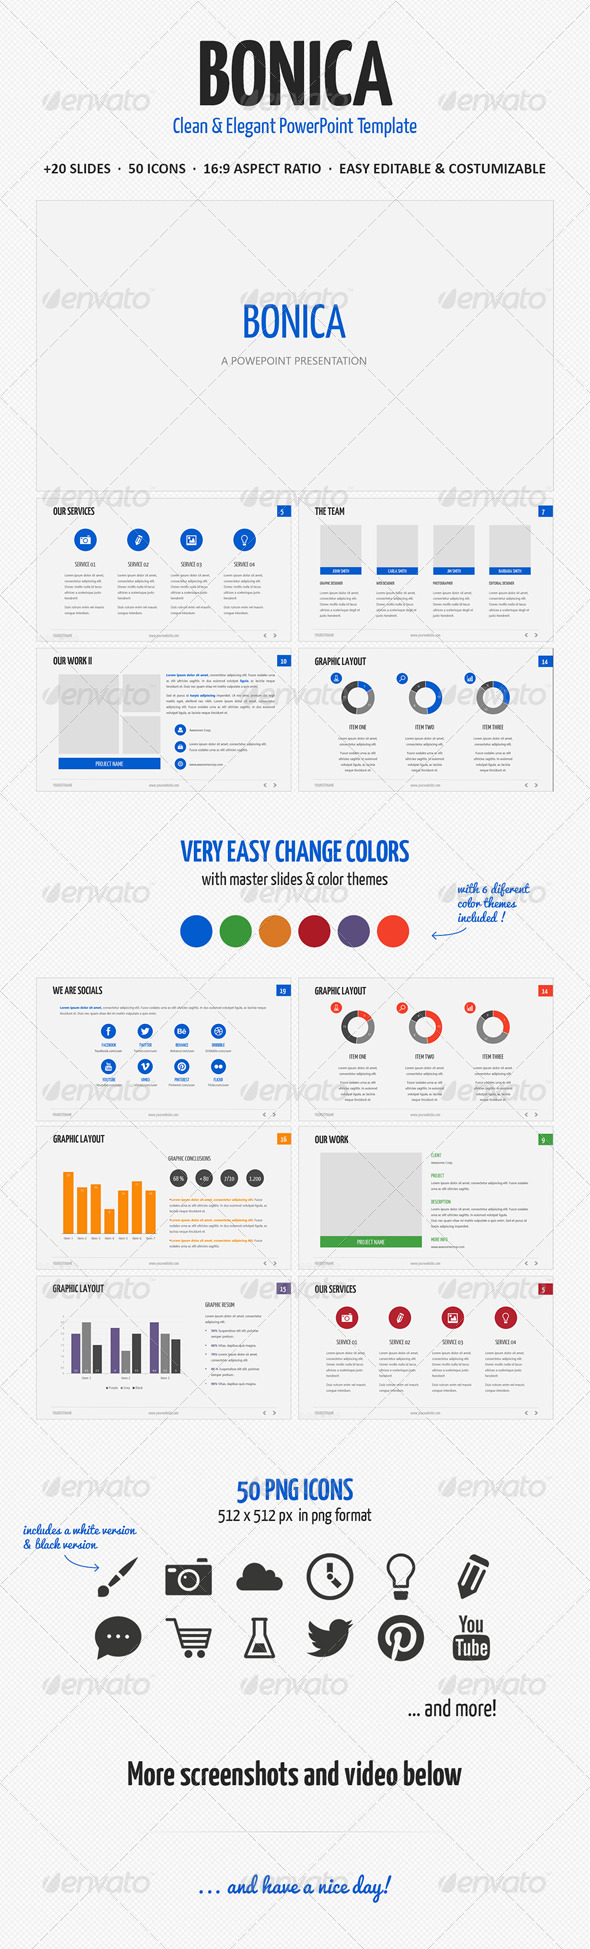 GraphicRiver Bonica Powerpoint Template 4592658